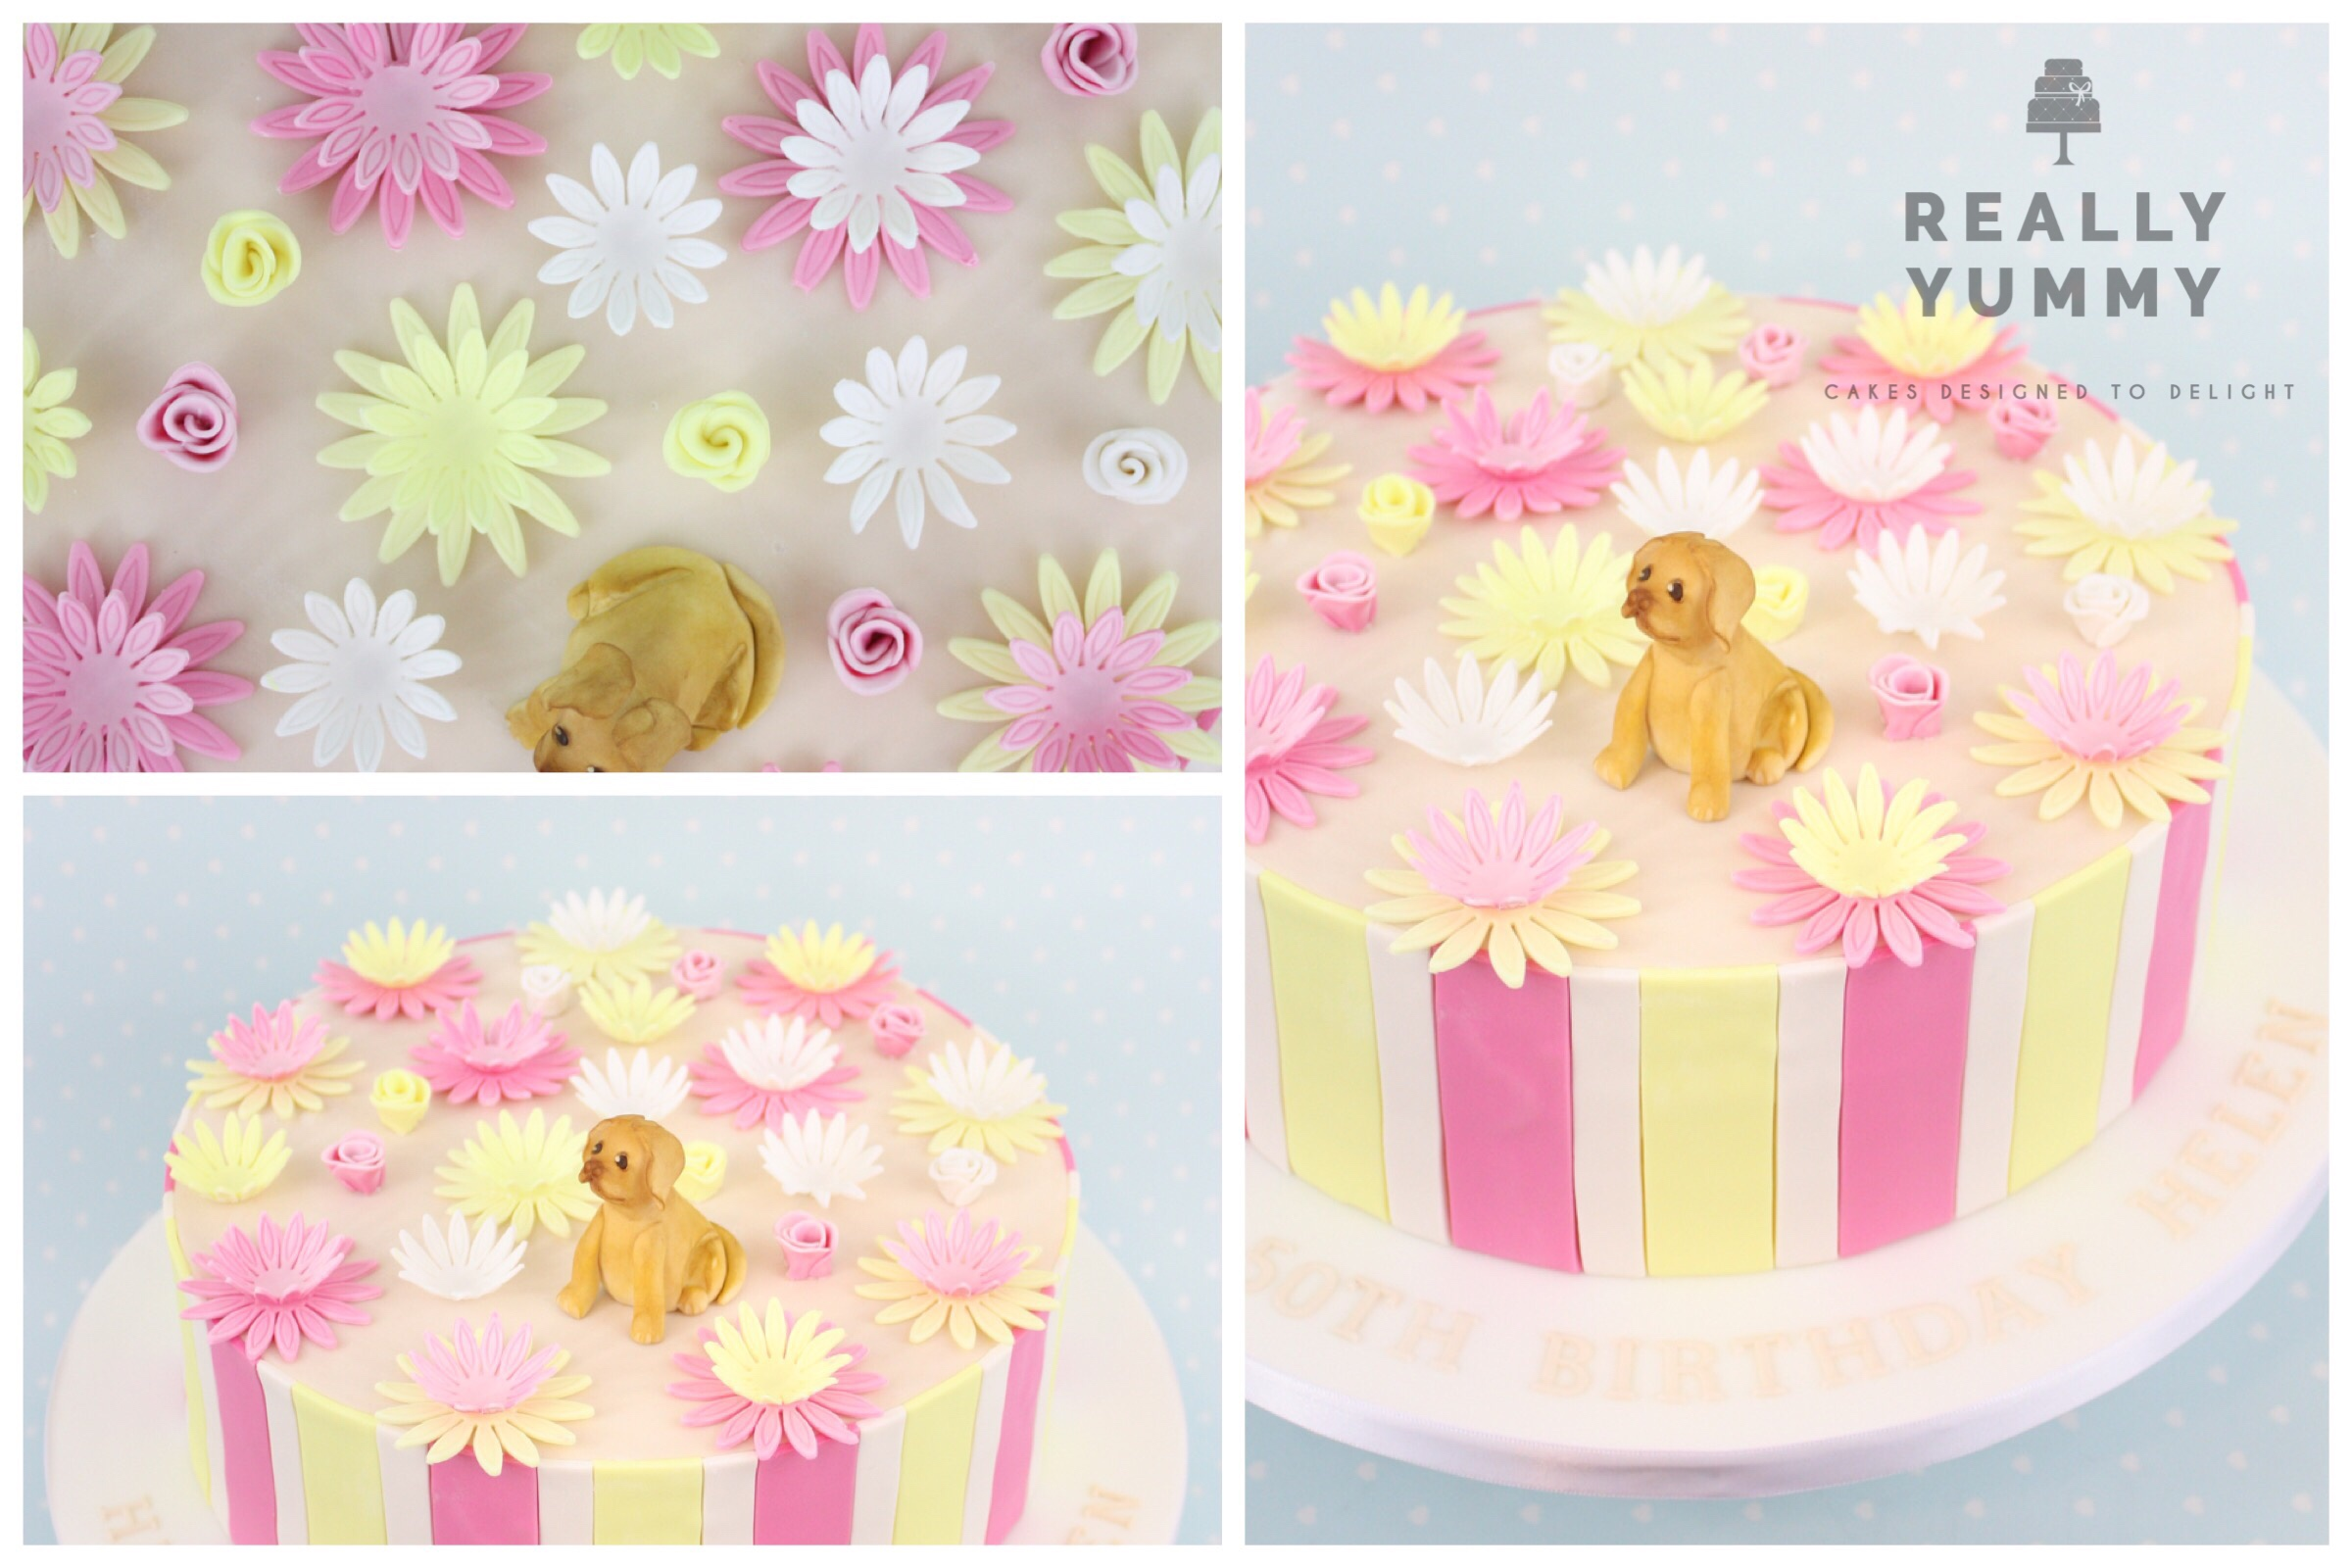 Rachel S. - Lovely cake - looked good and tasted wonderful.Had to change plans last minute and was very grateful that Liz was so flexible, would highly recommend